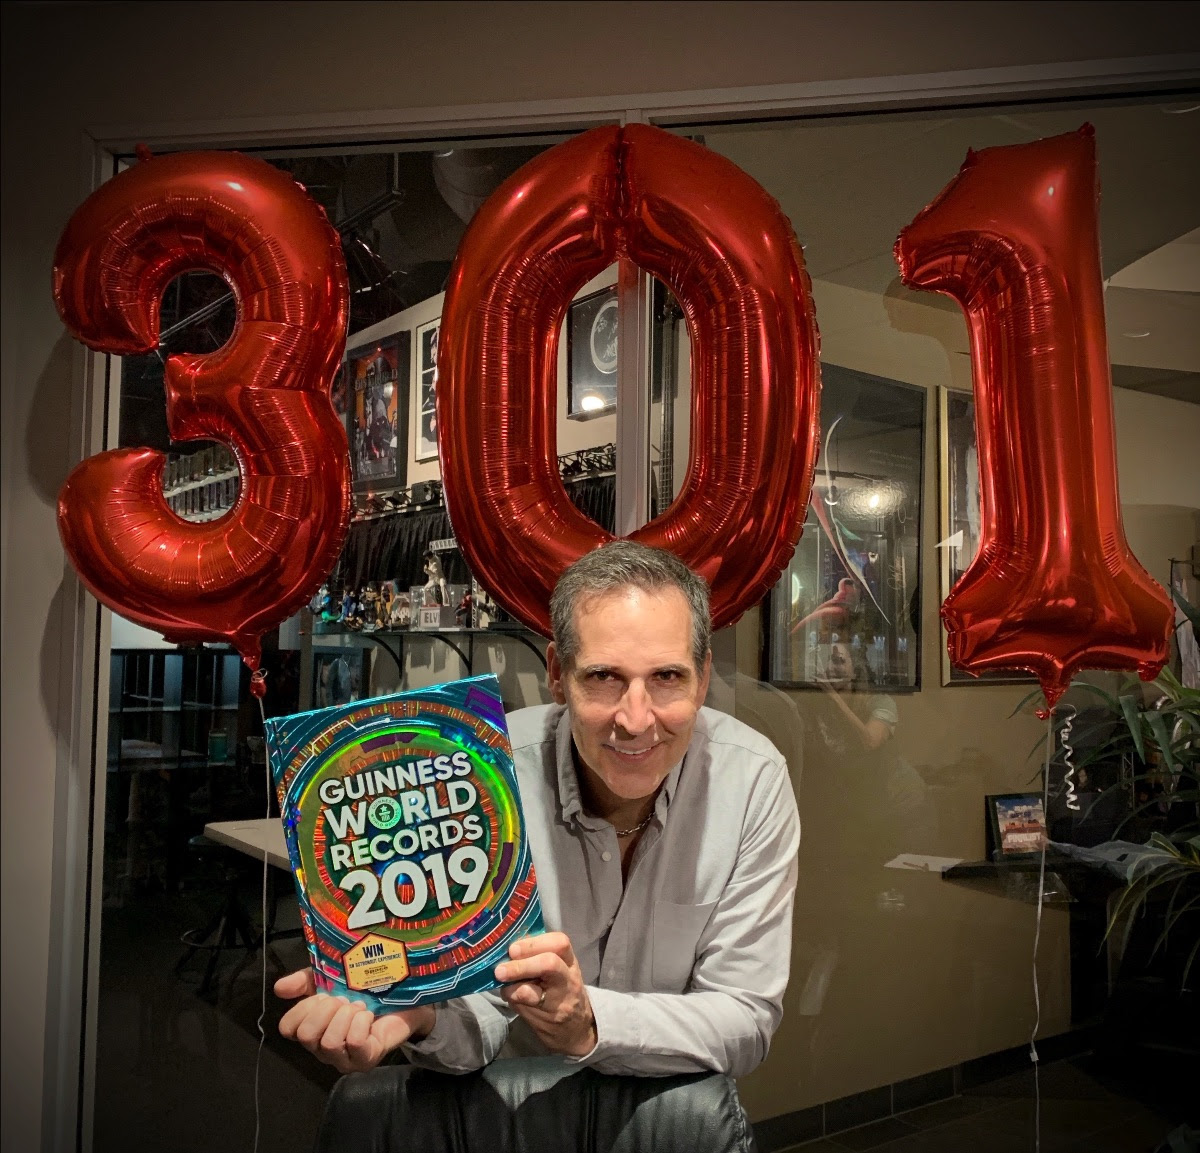 Spawn creator Todd McFarlane posing with the Guinness Book of World Records